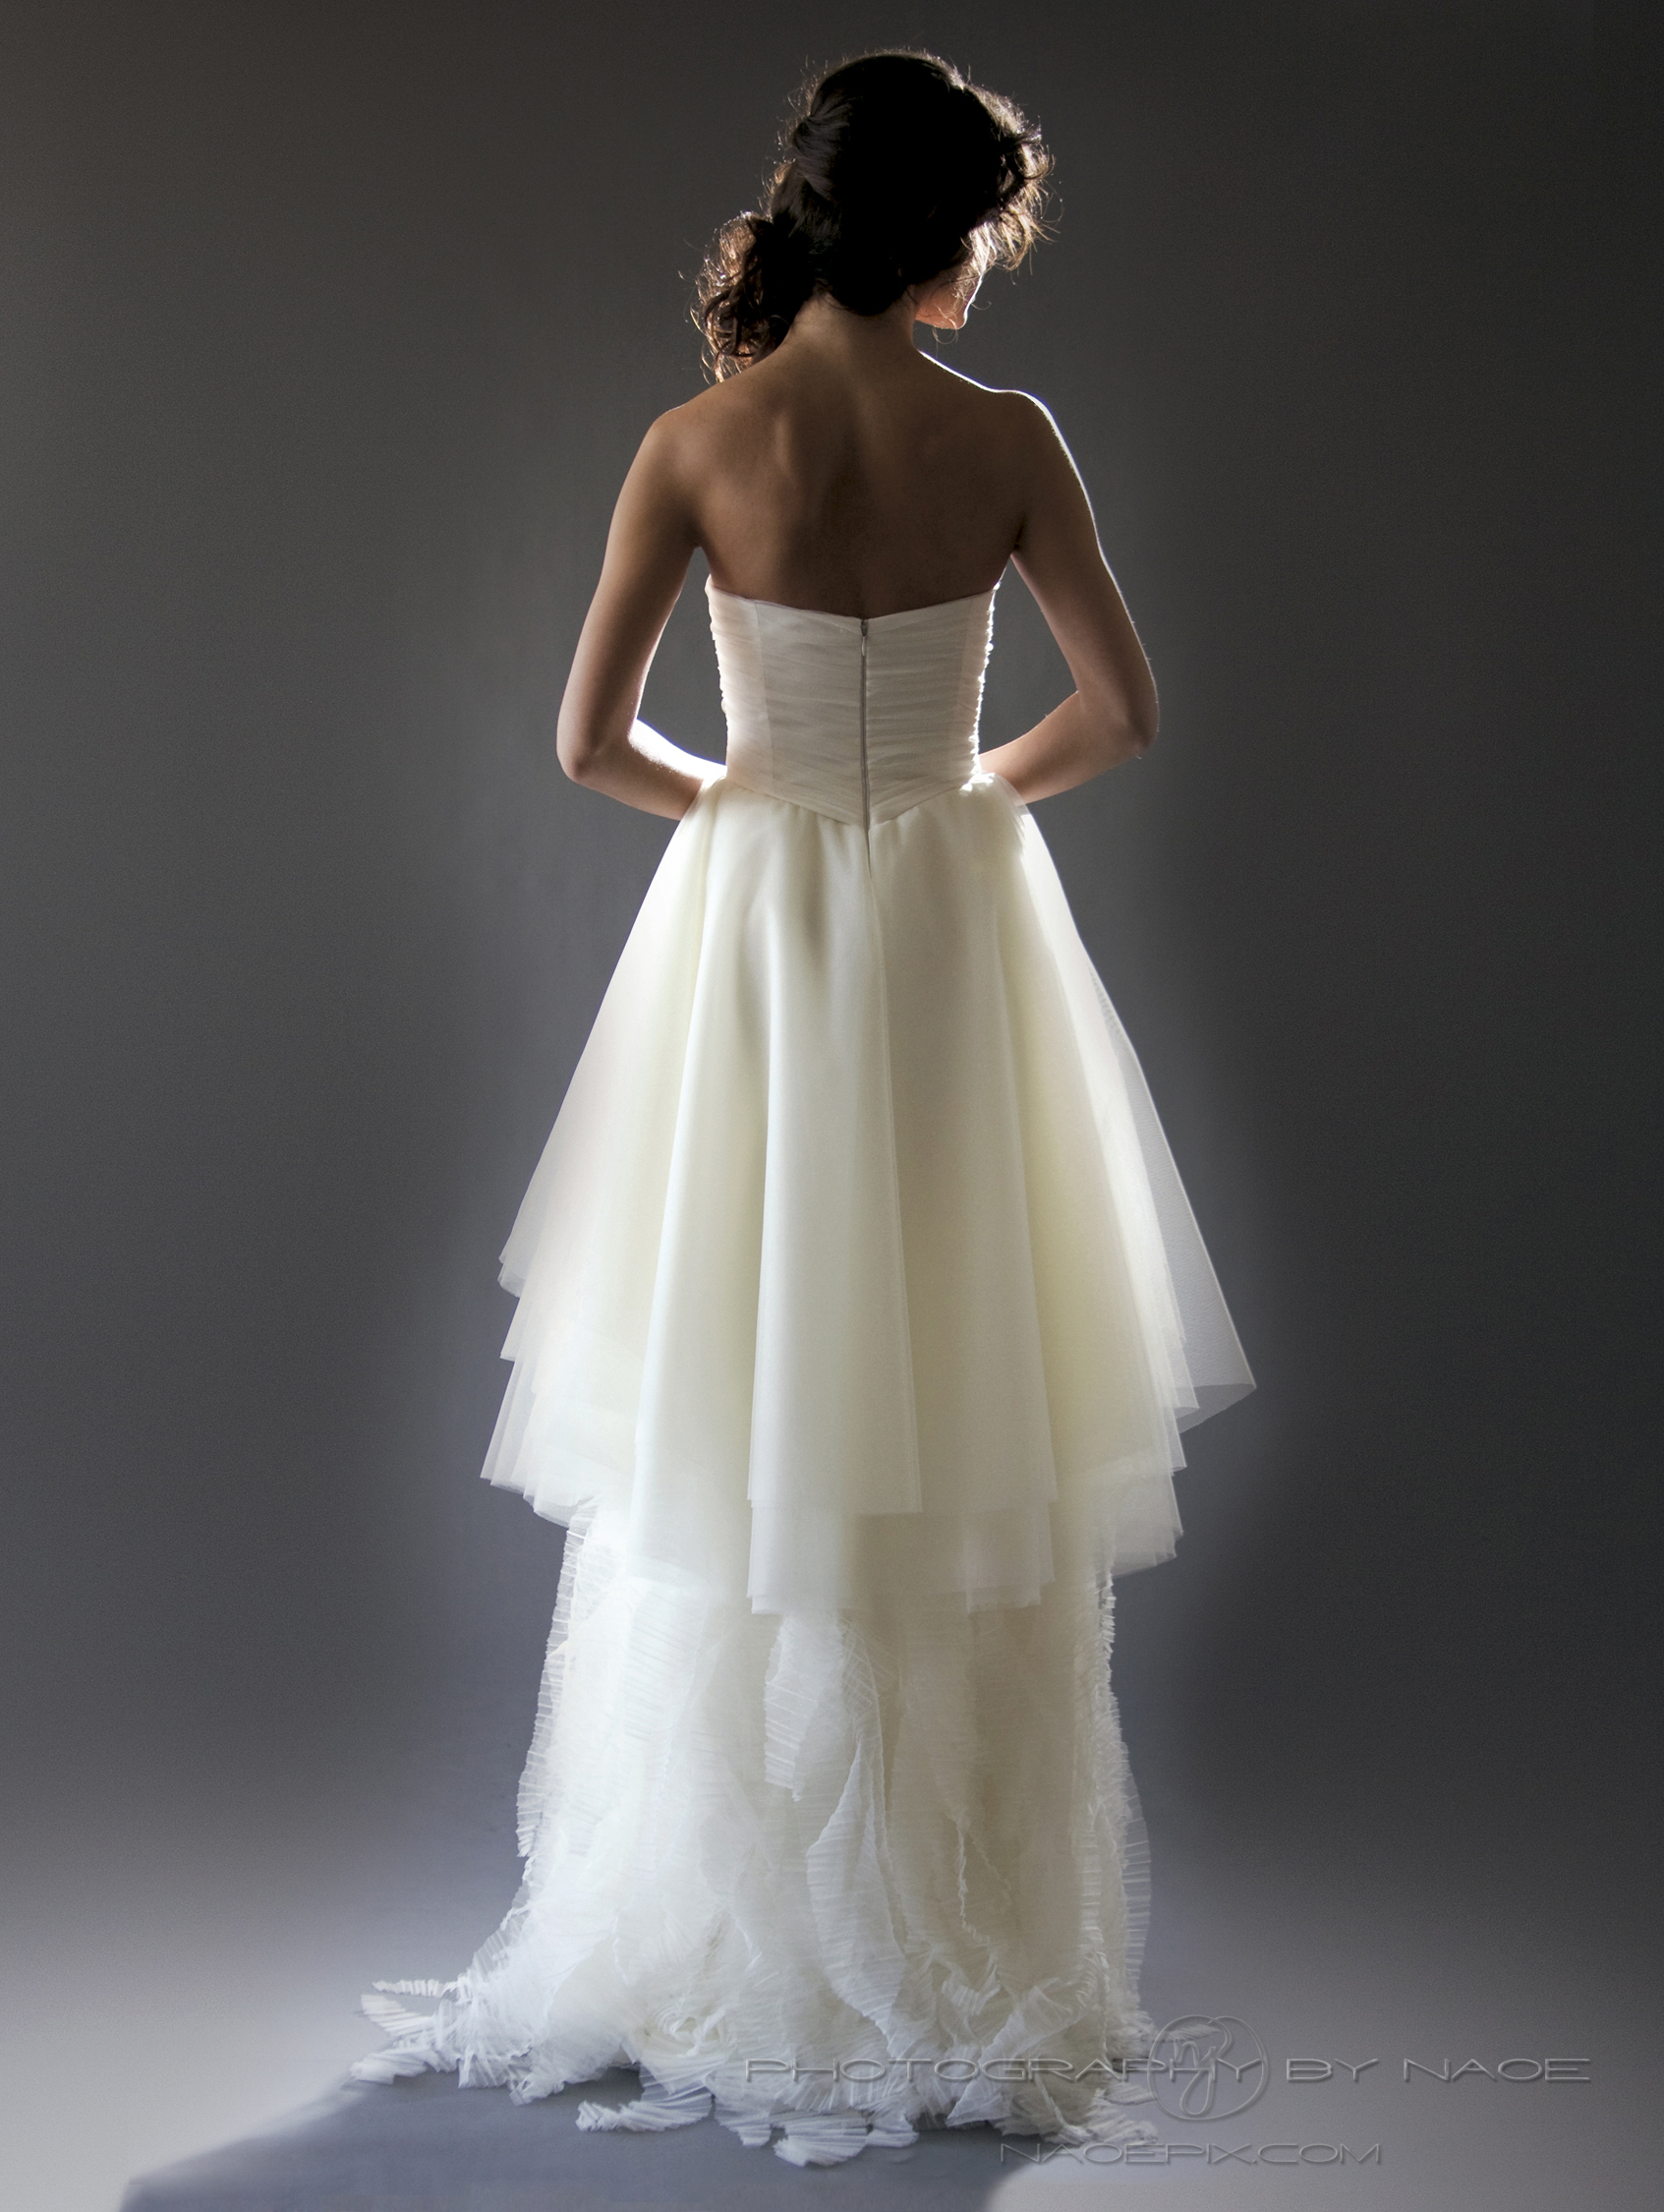 Wedding-dress-spring-2013-bridal_gown-cocoe-voci-1-_back.original